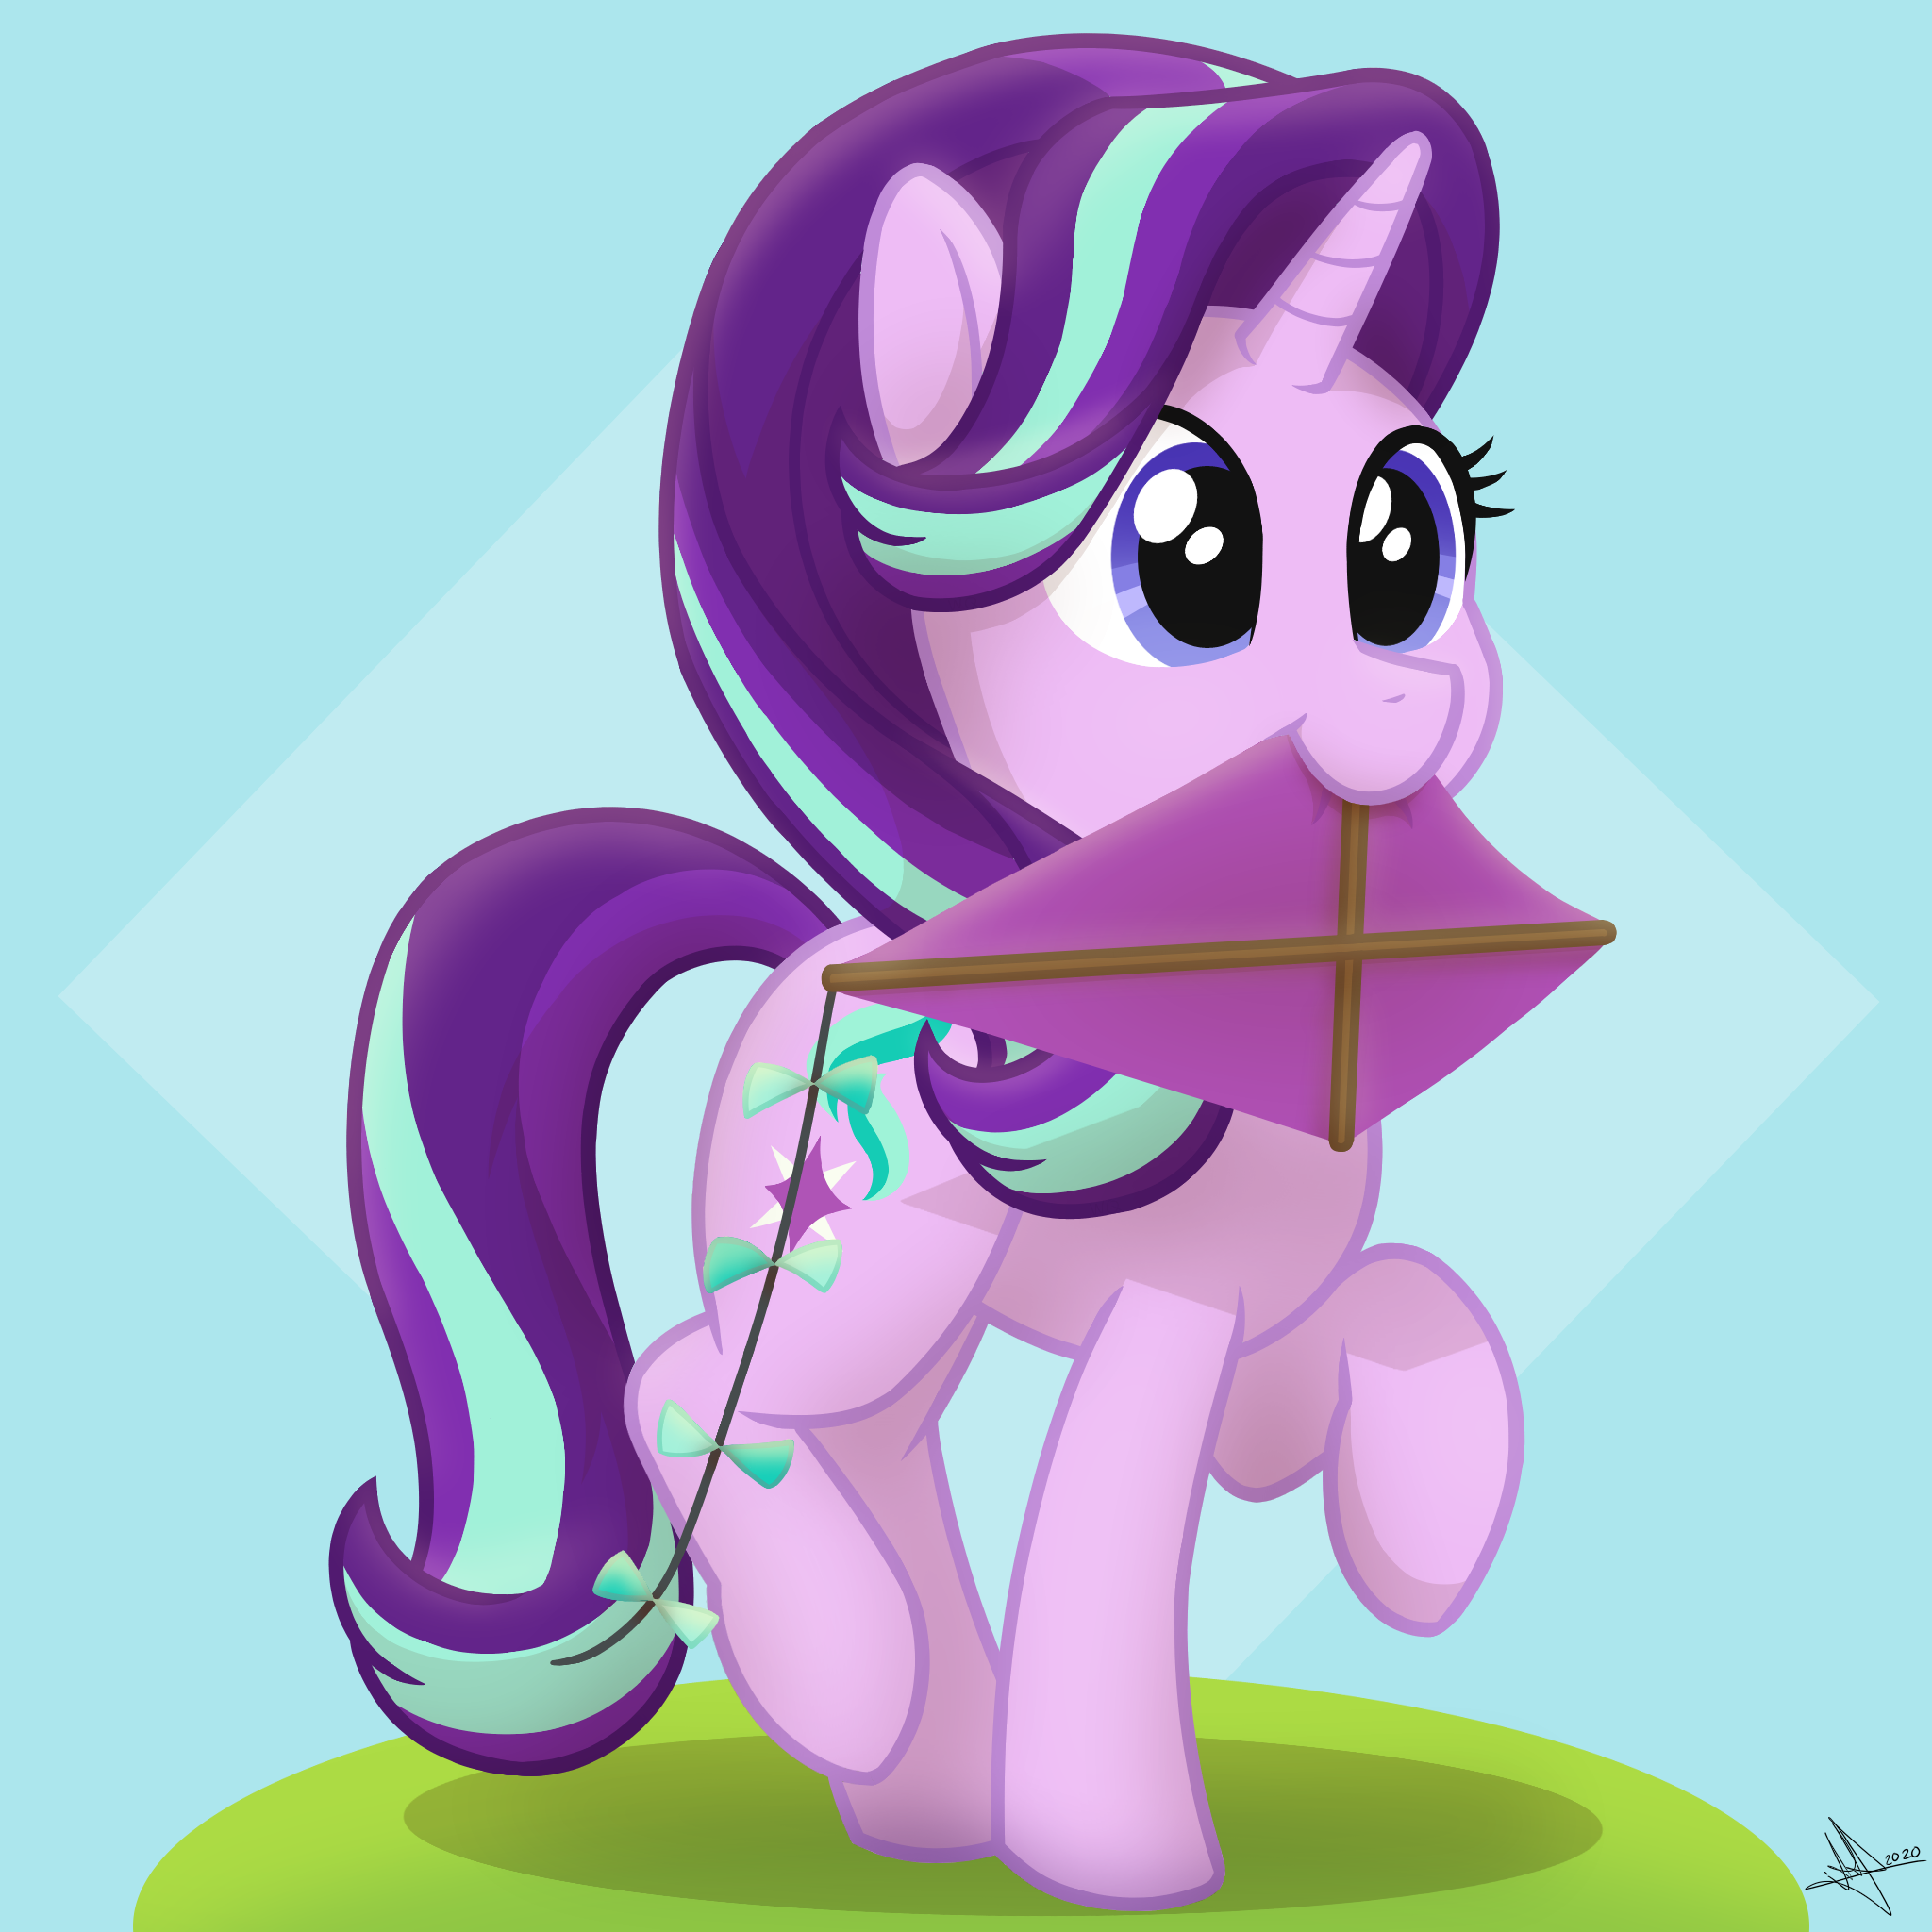 Starlight Glimmer and her kite